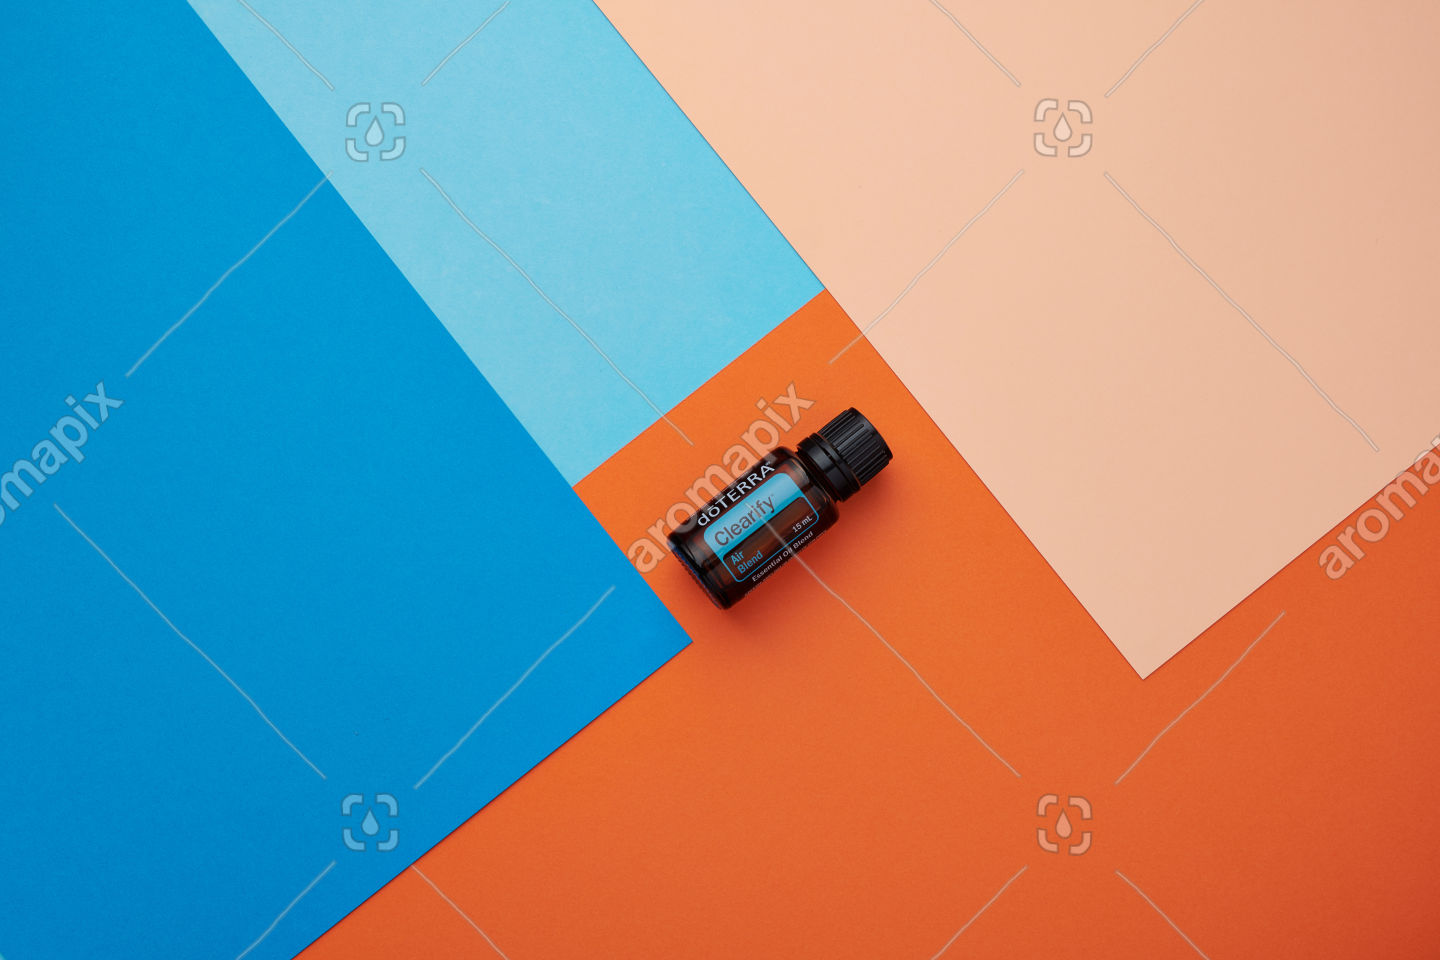 doTERRA Clearify on a blue and orange background